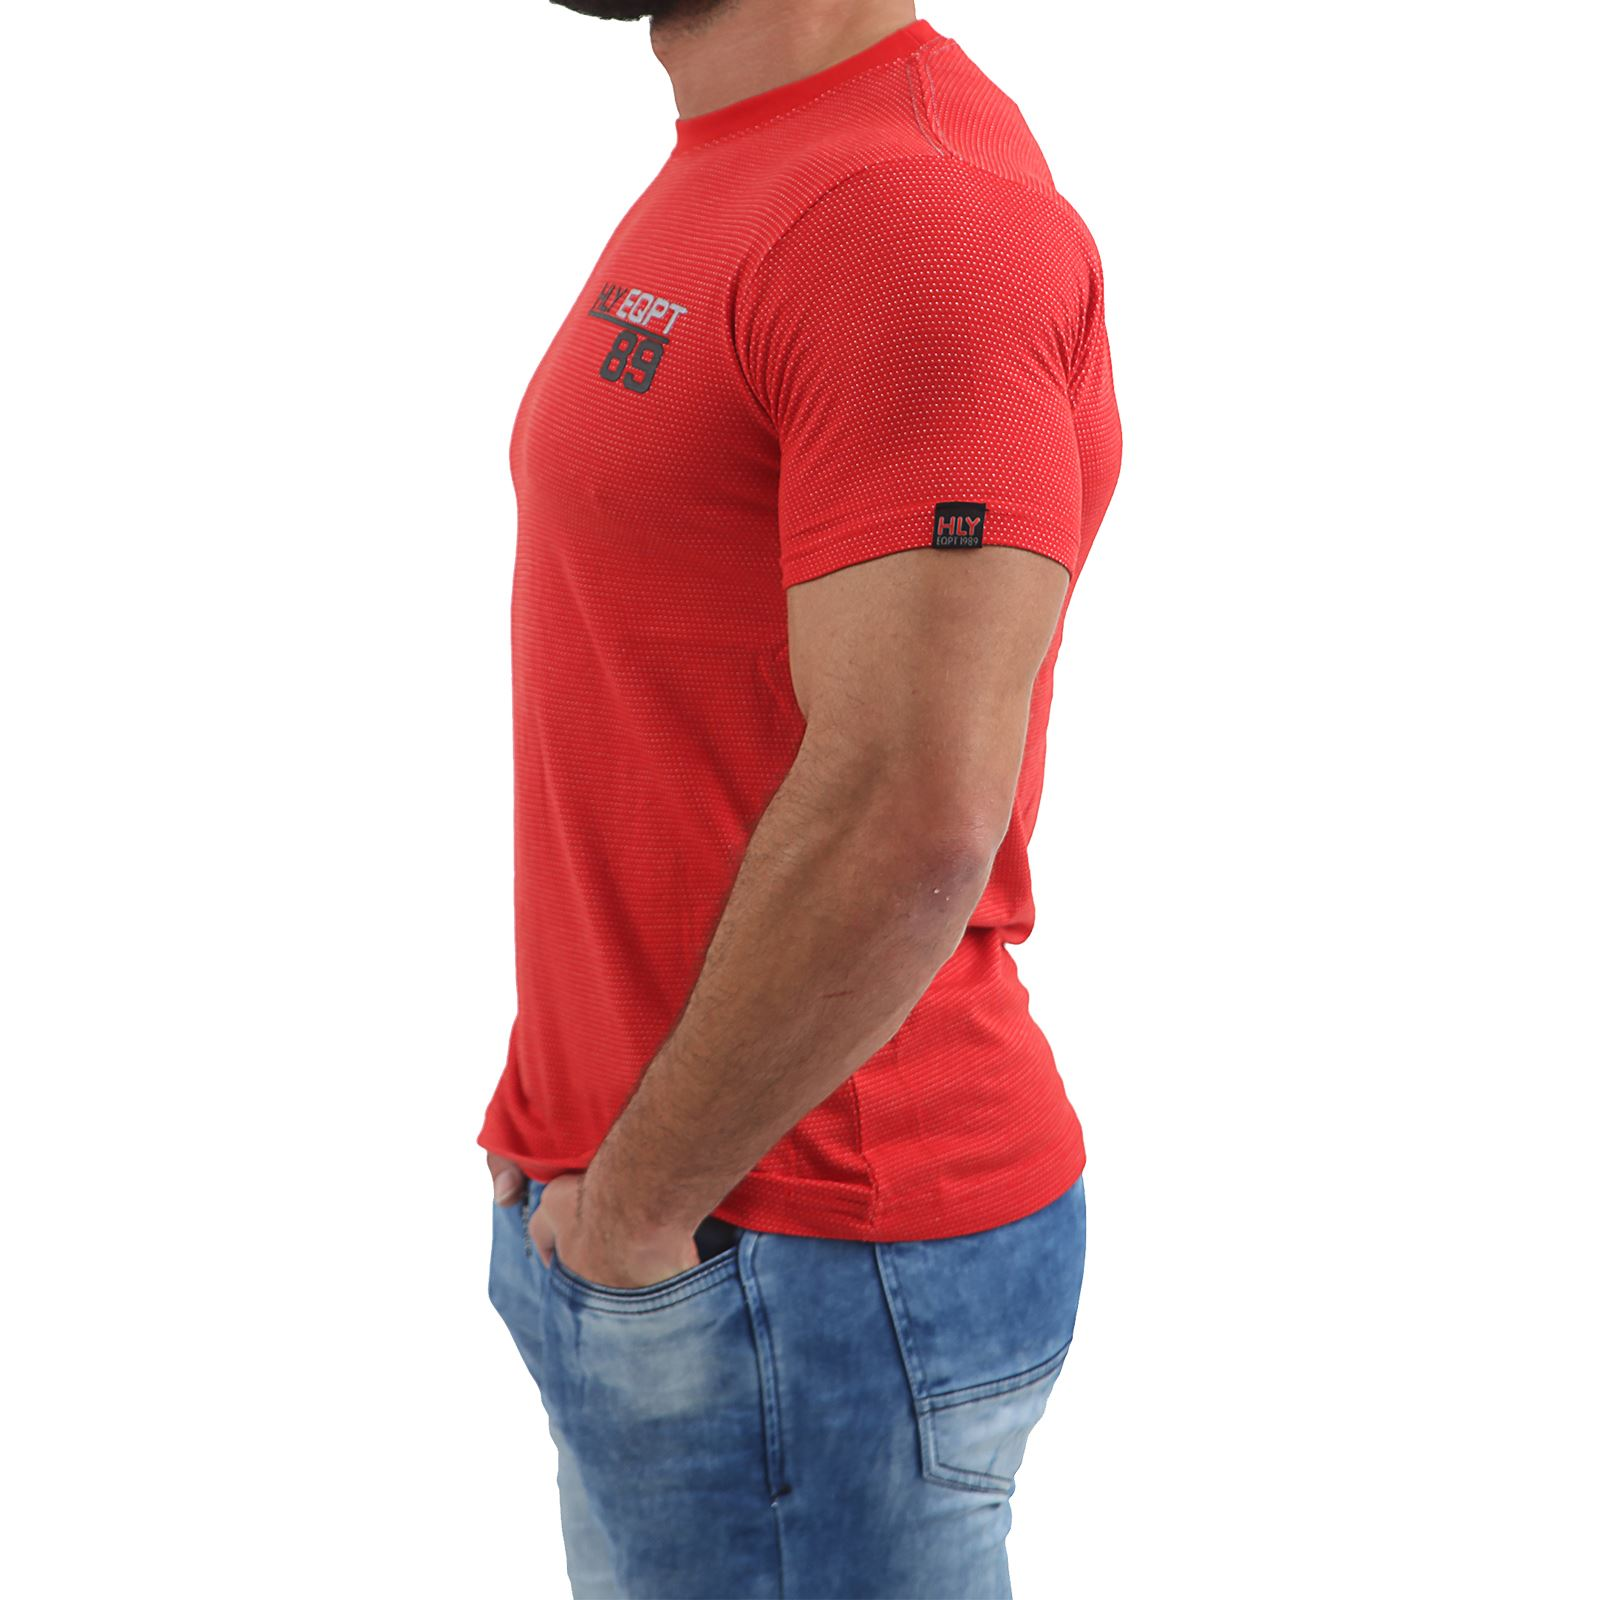 Mens-HLY-EQPT-Printed-T-Shirt-100-Cotton-Gym-Athletic-Training-Tee-Top-Summer thumbnail 44